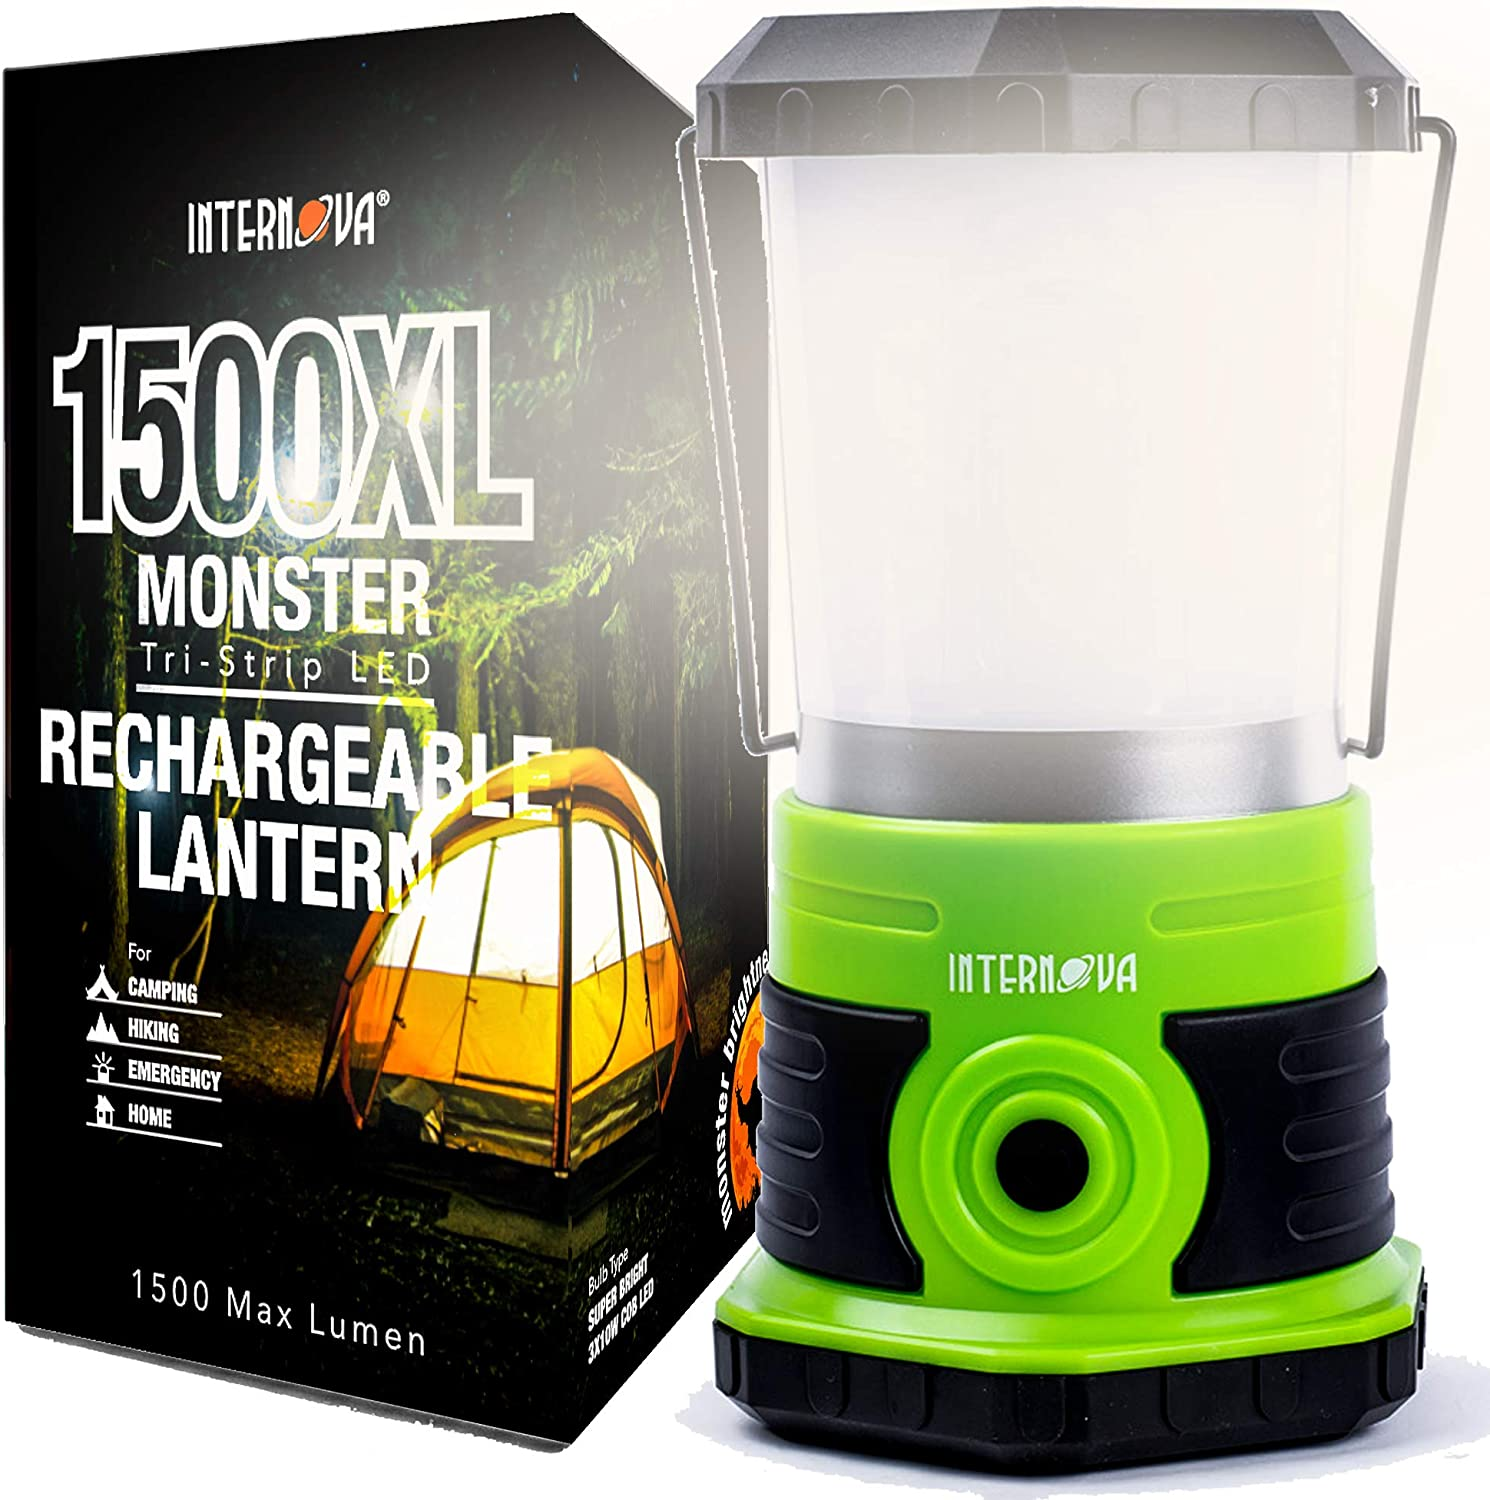 Internova Monster LED Camping Lantern - Massive Brightness with Both Battery and Rechargeable Models - The Perfect LED Lantern for Hurricane - Camp - Emergency Kit